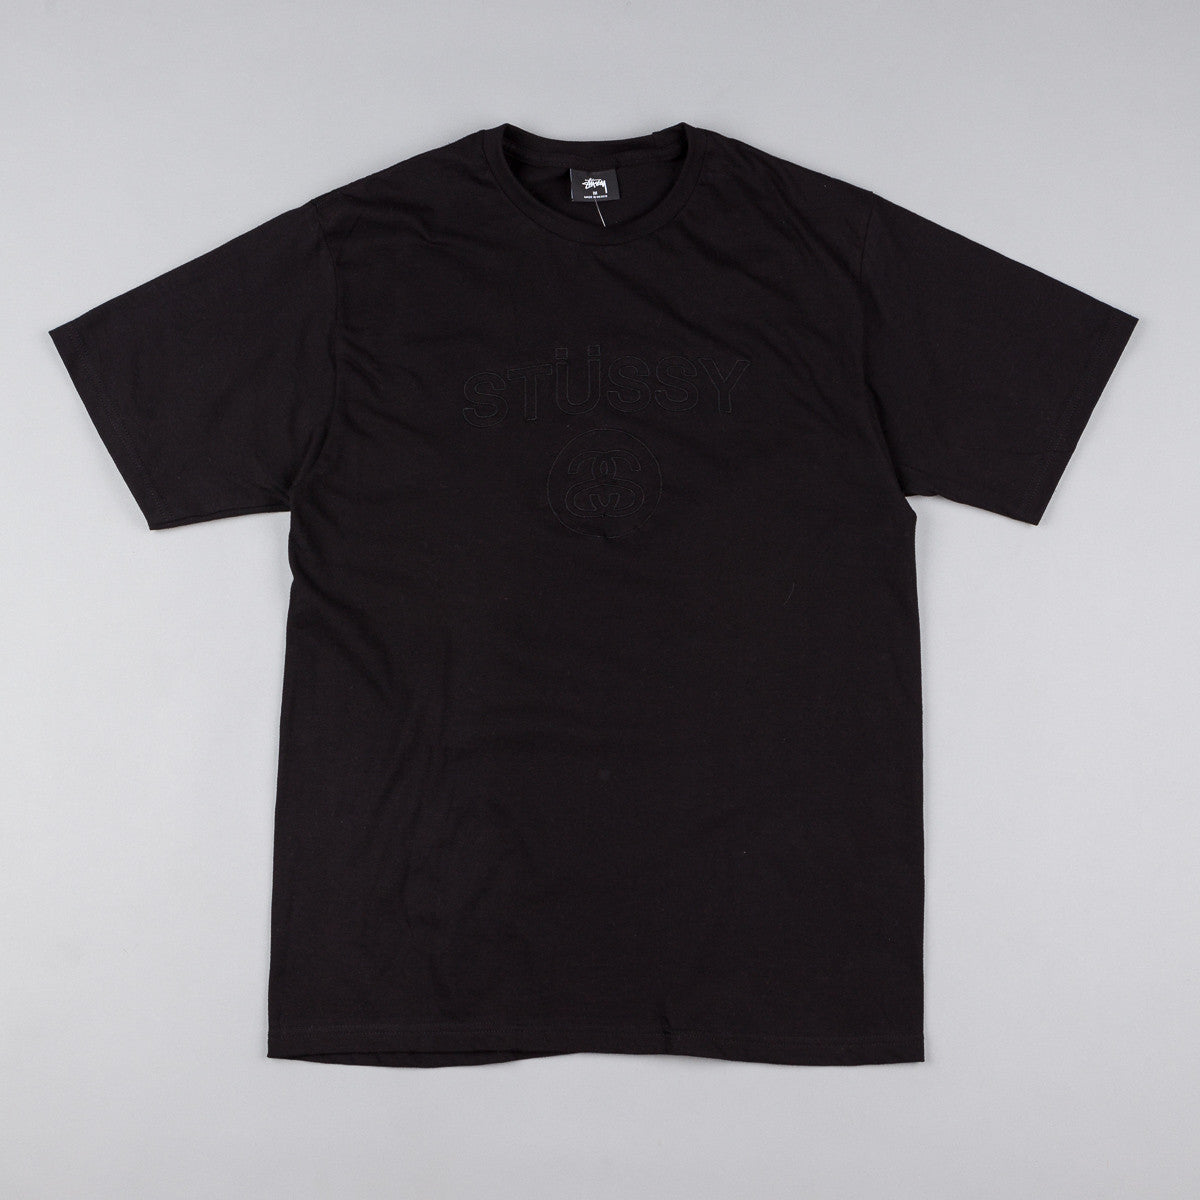 Stussy Link Embroidered T-Shirt